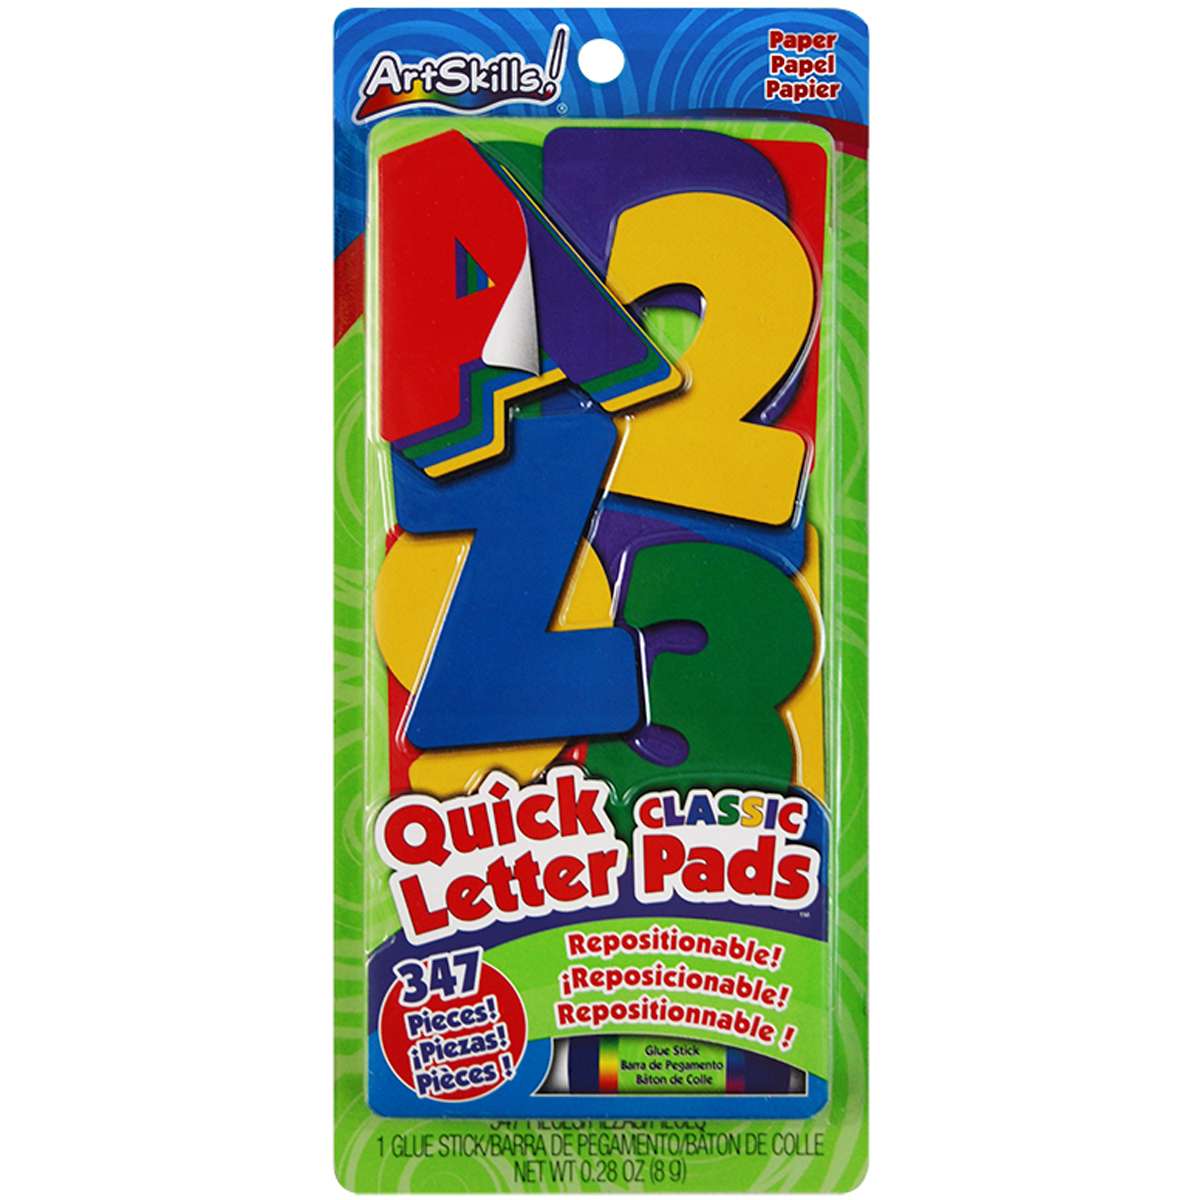 Artskills Quick Letter/Number Pads Repositionable With Glue Stick, Classic Colors, 347pc